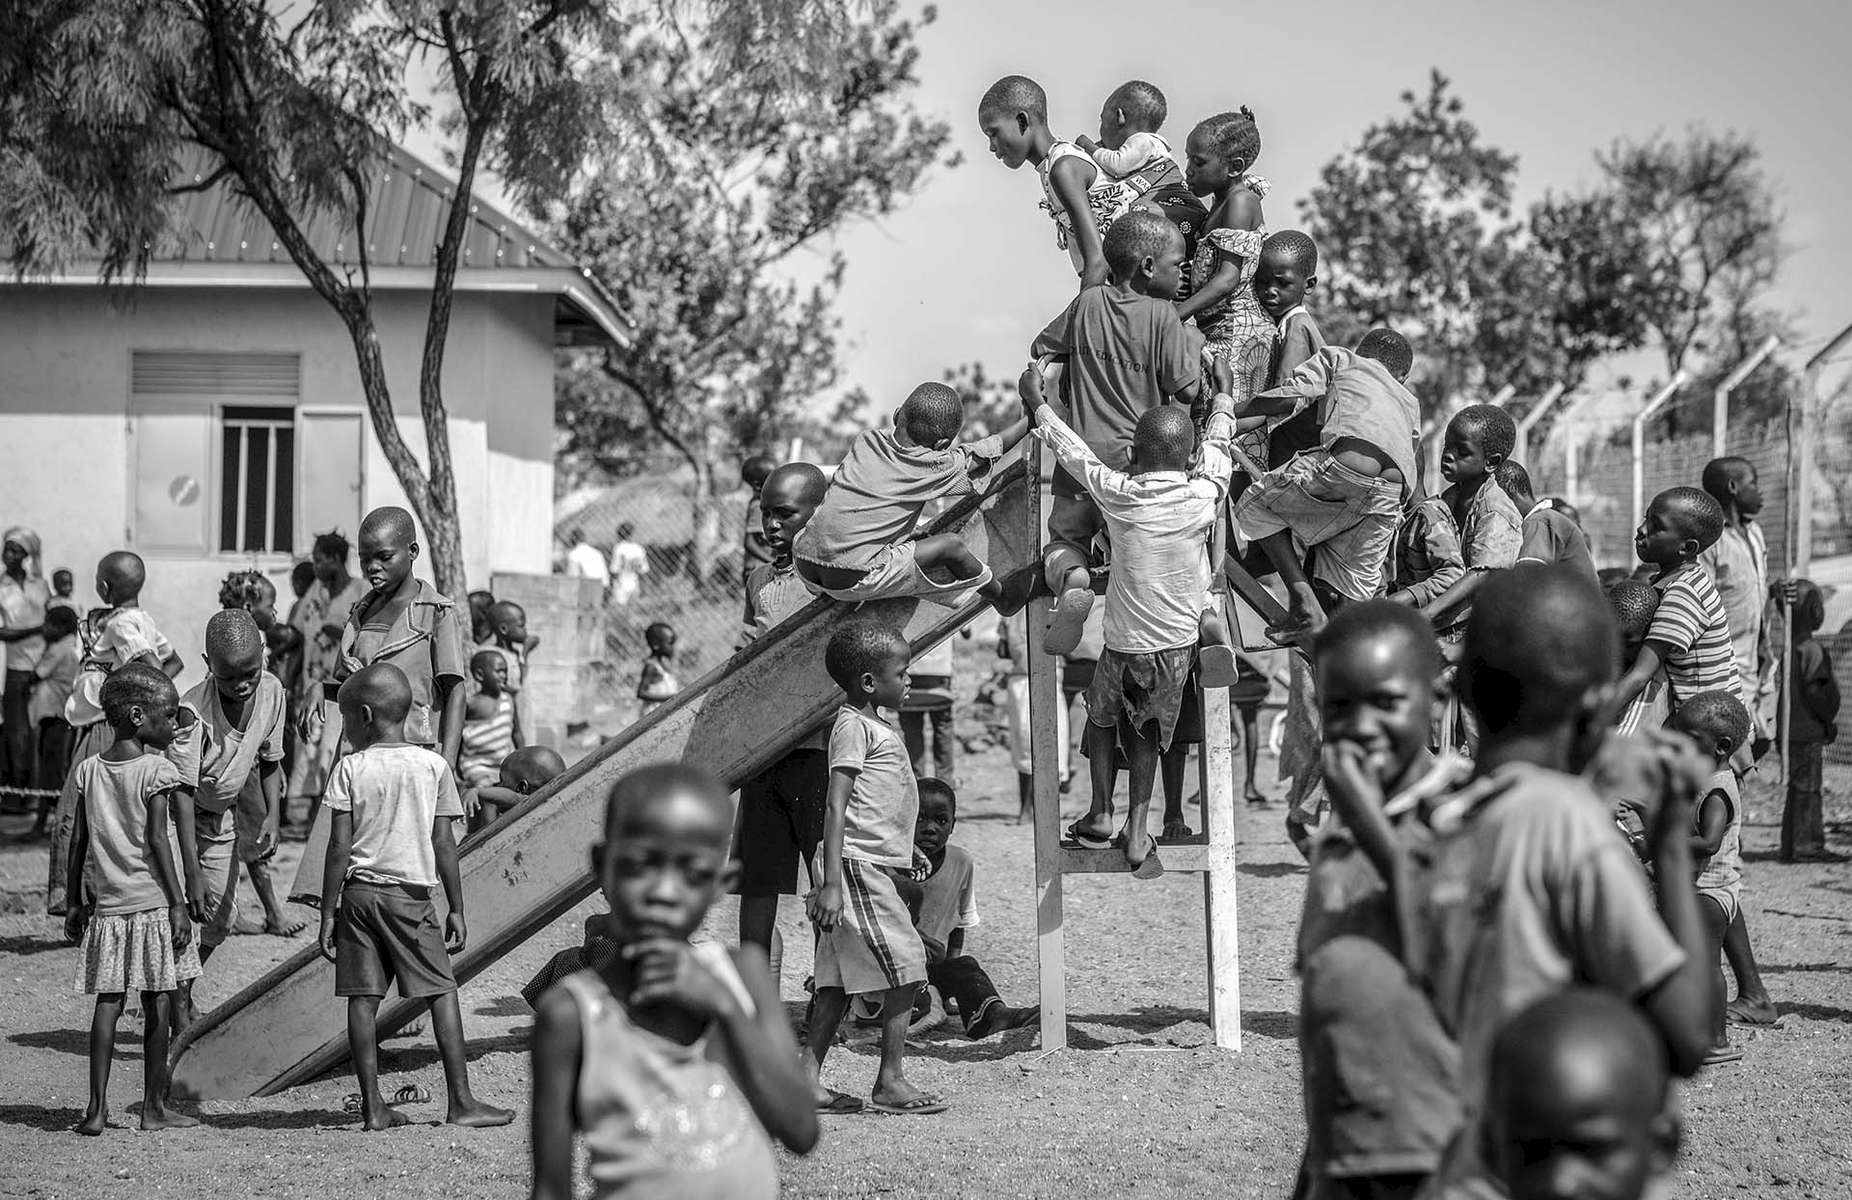 Children in their natural state at a child friend space in Bidoibidi Refugee Settlement in Yumbe district in Uganda 1 March, 2017.